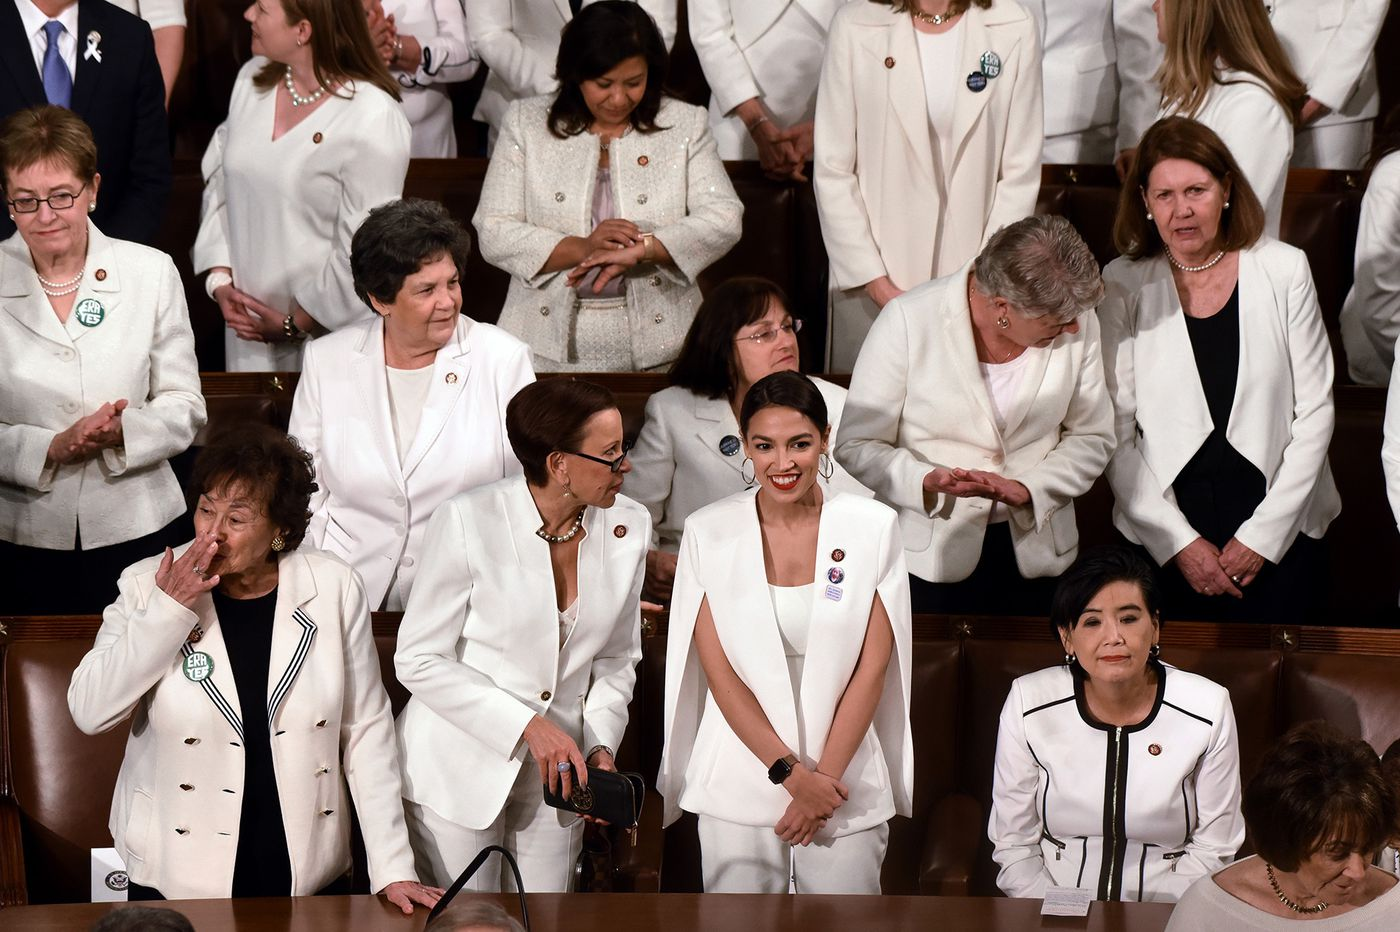 State of the Union's white-wearing congresswomen reminded me of the church-going black women in my family | Elizabeth Wellington